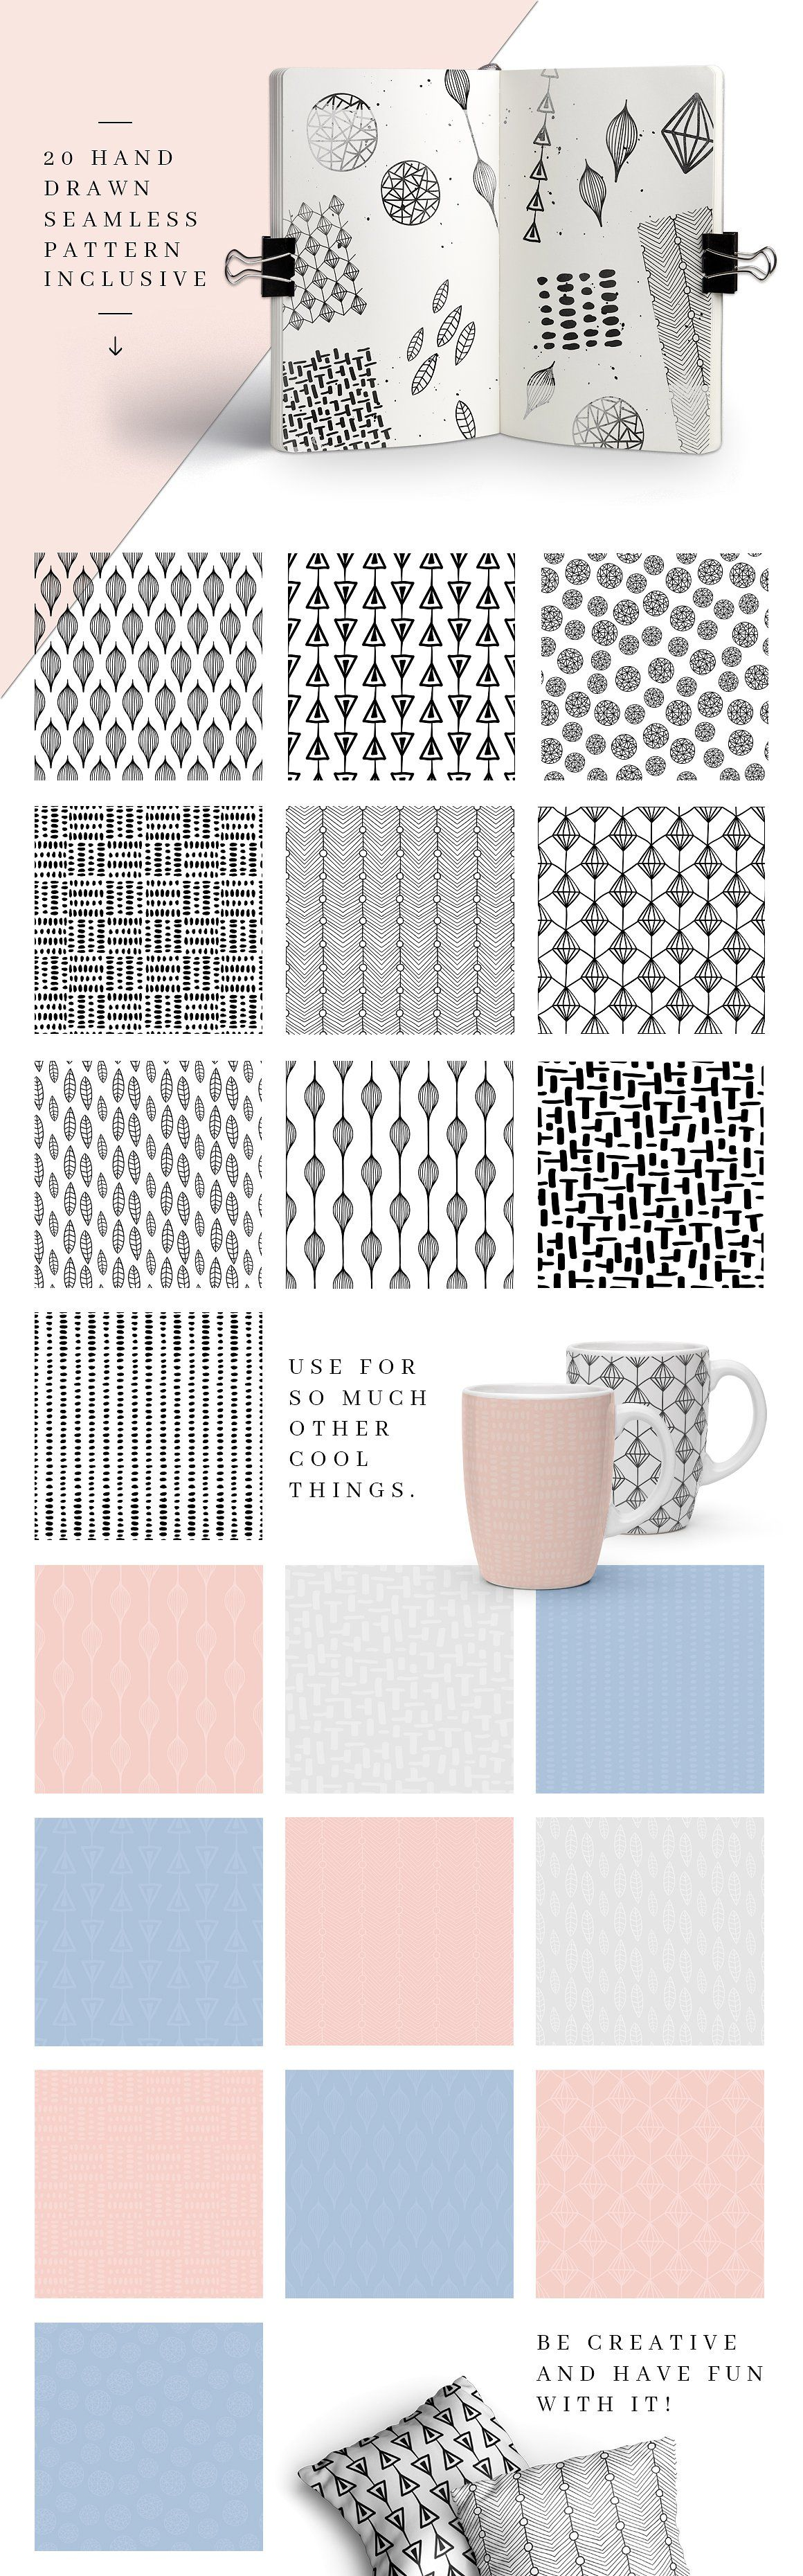 Malina branding bundle all in one business card logo business malina branding bundle all in one card patternsbackground colourmoves